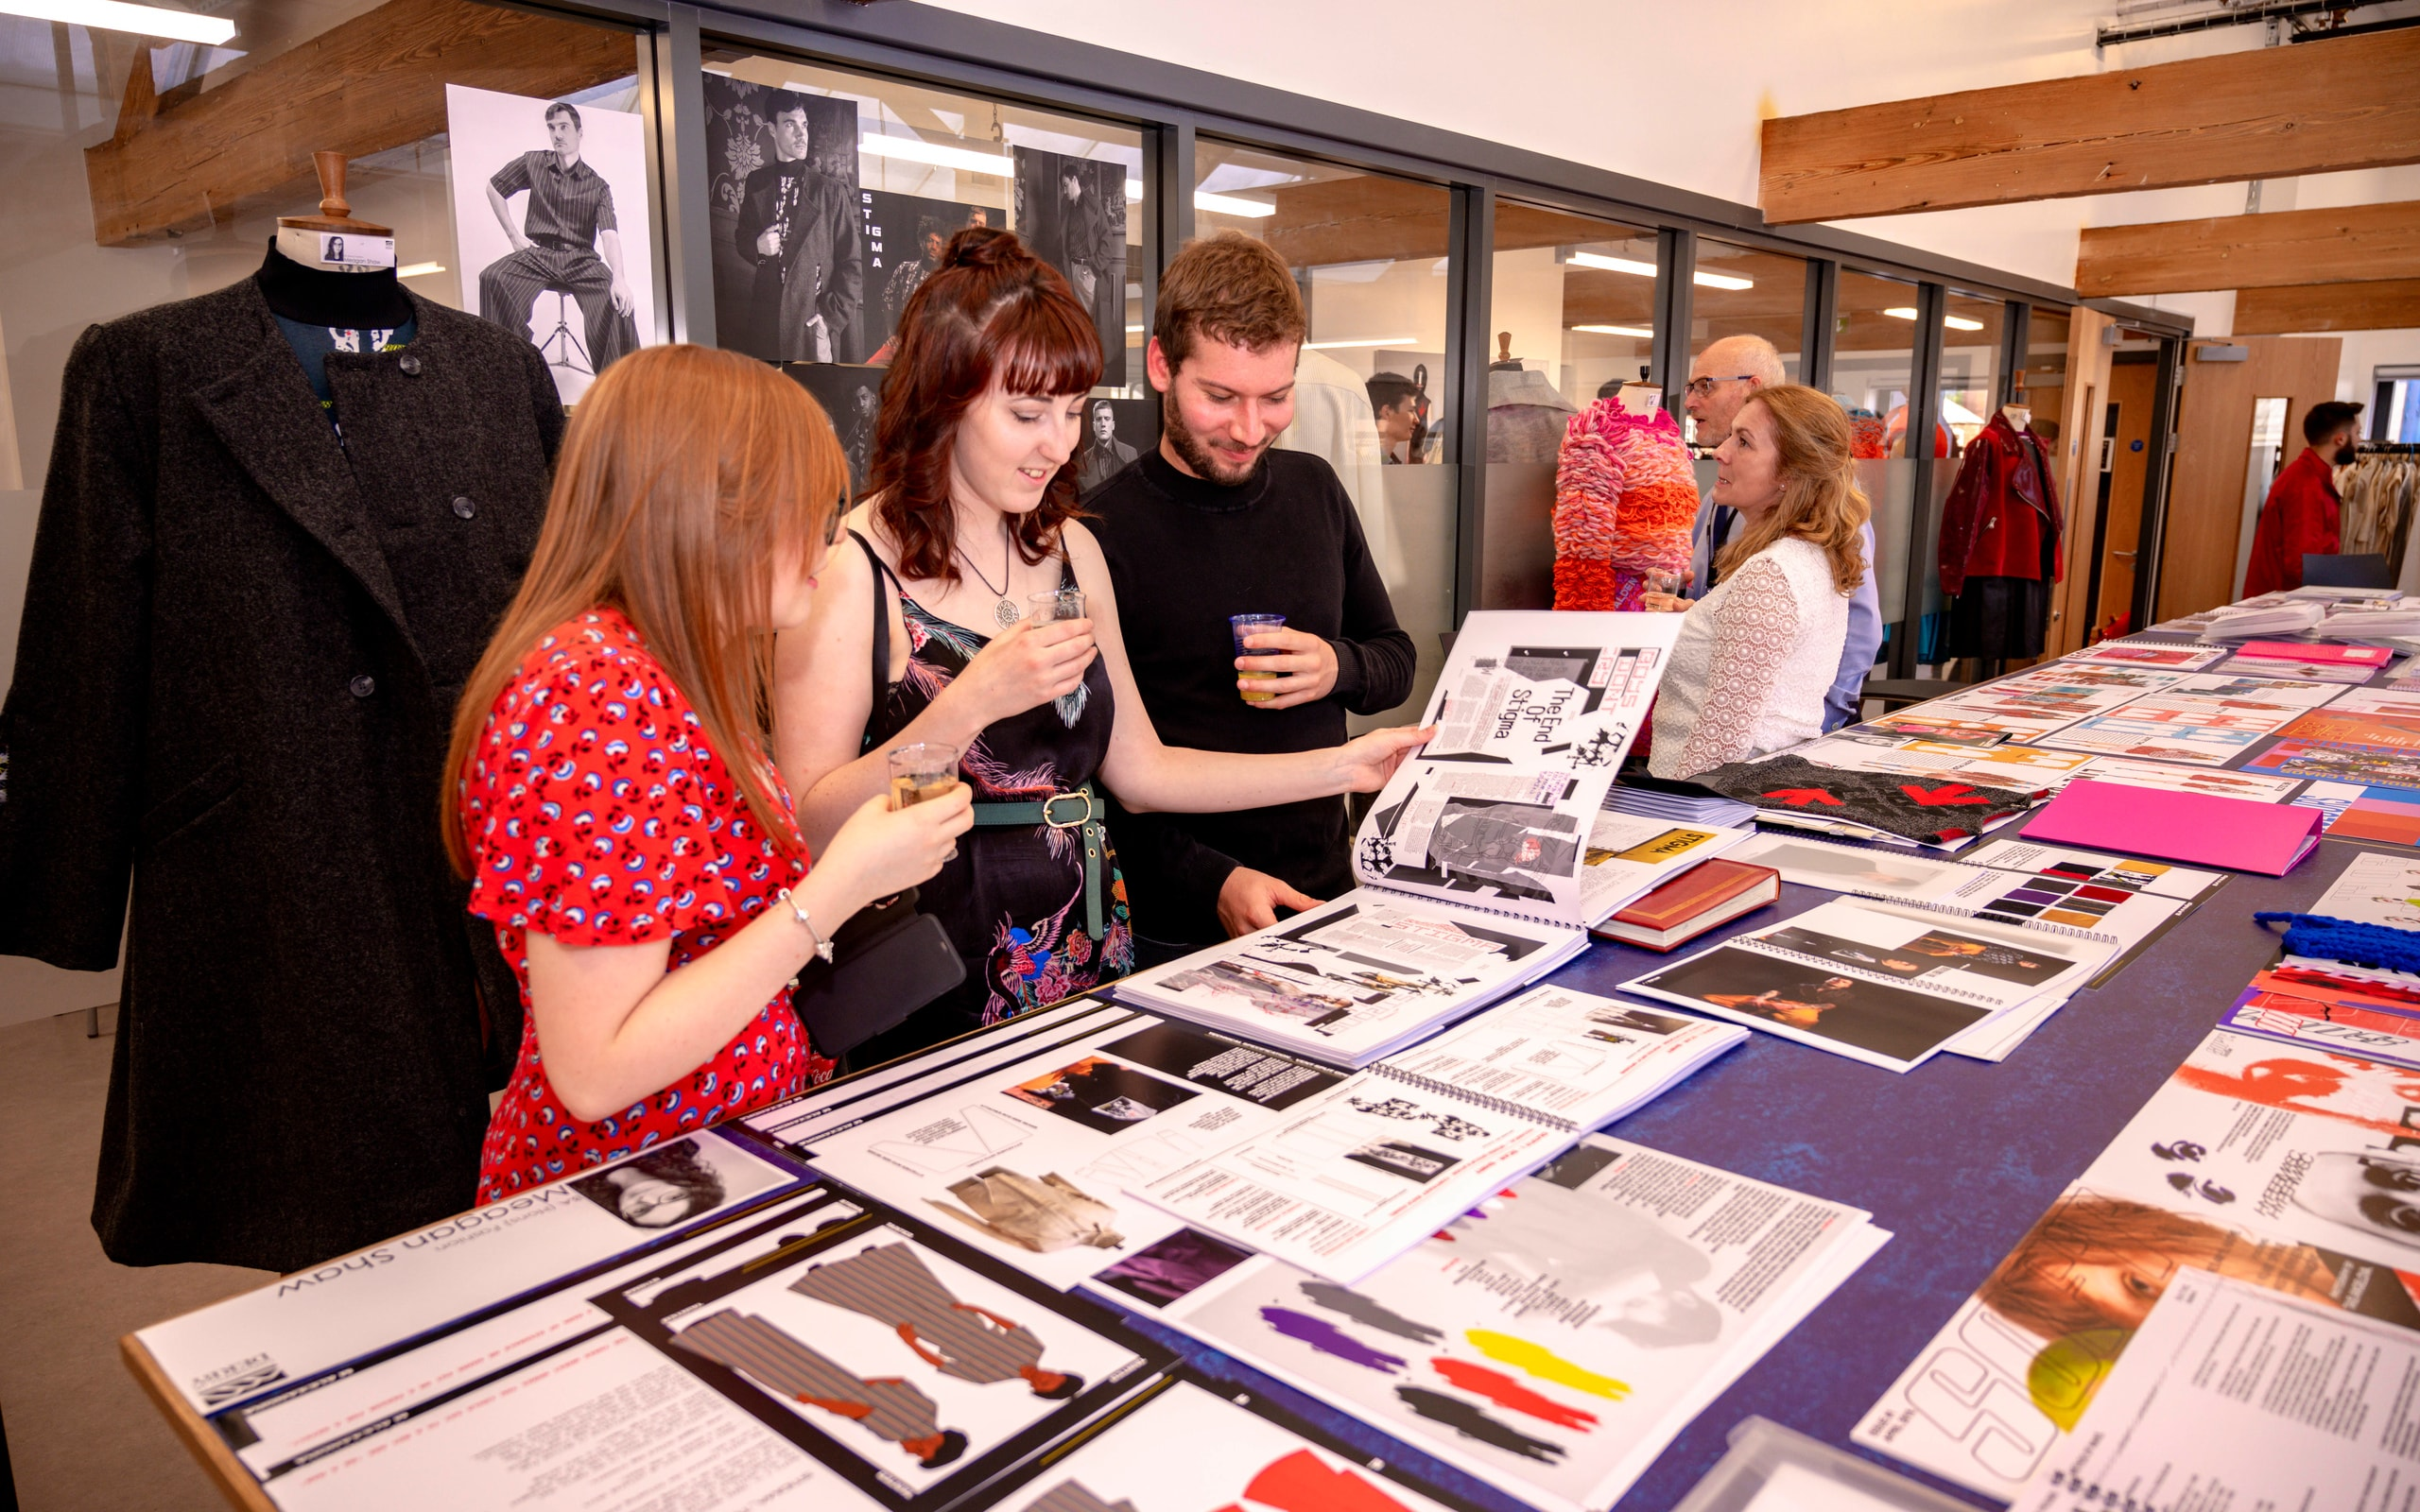 Visitors looking through degree show art student portfolios